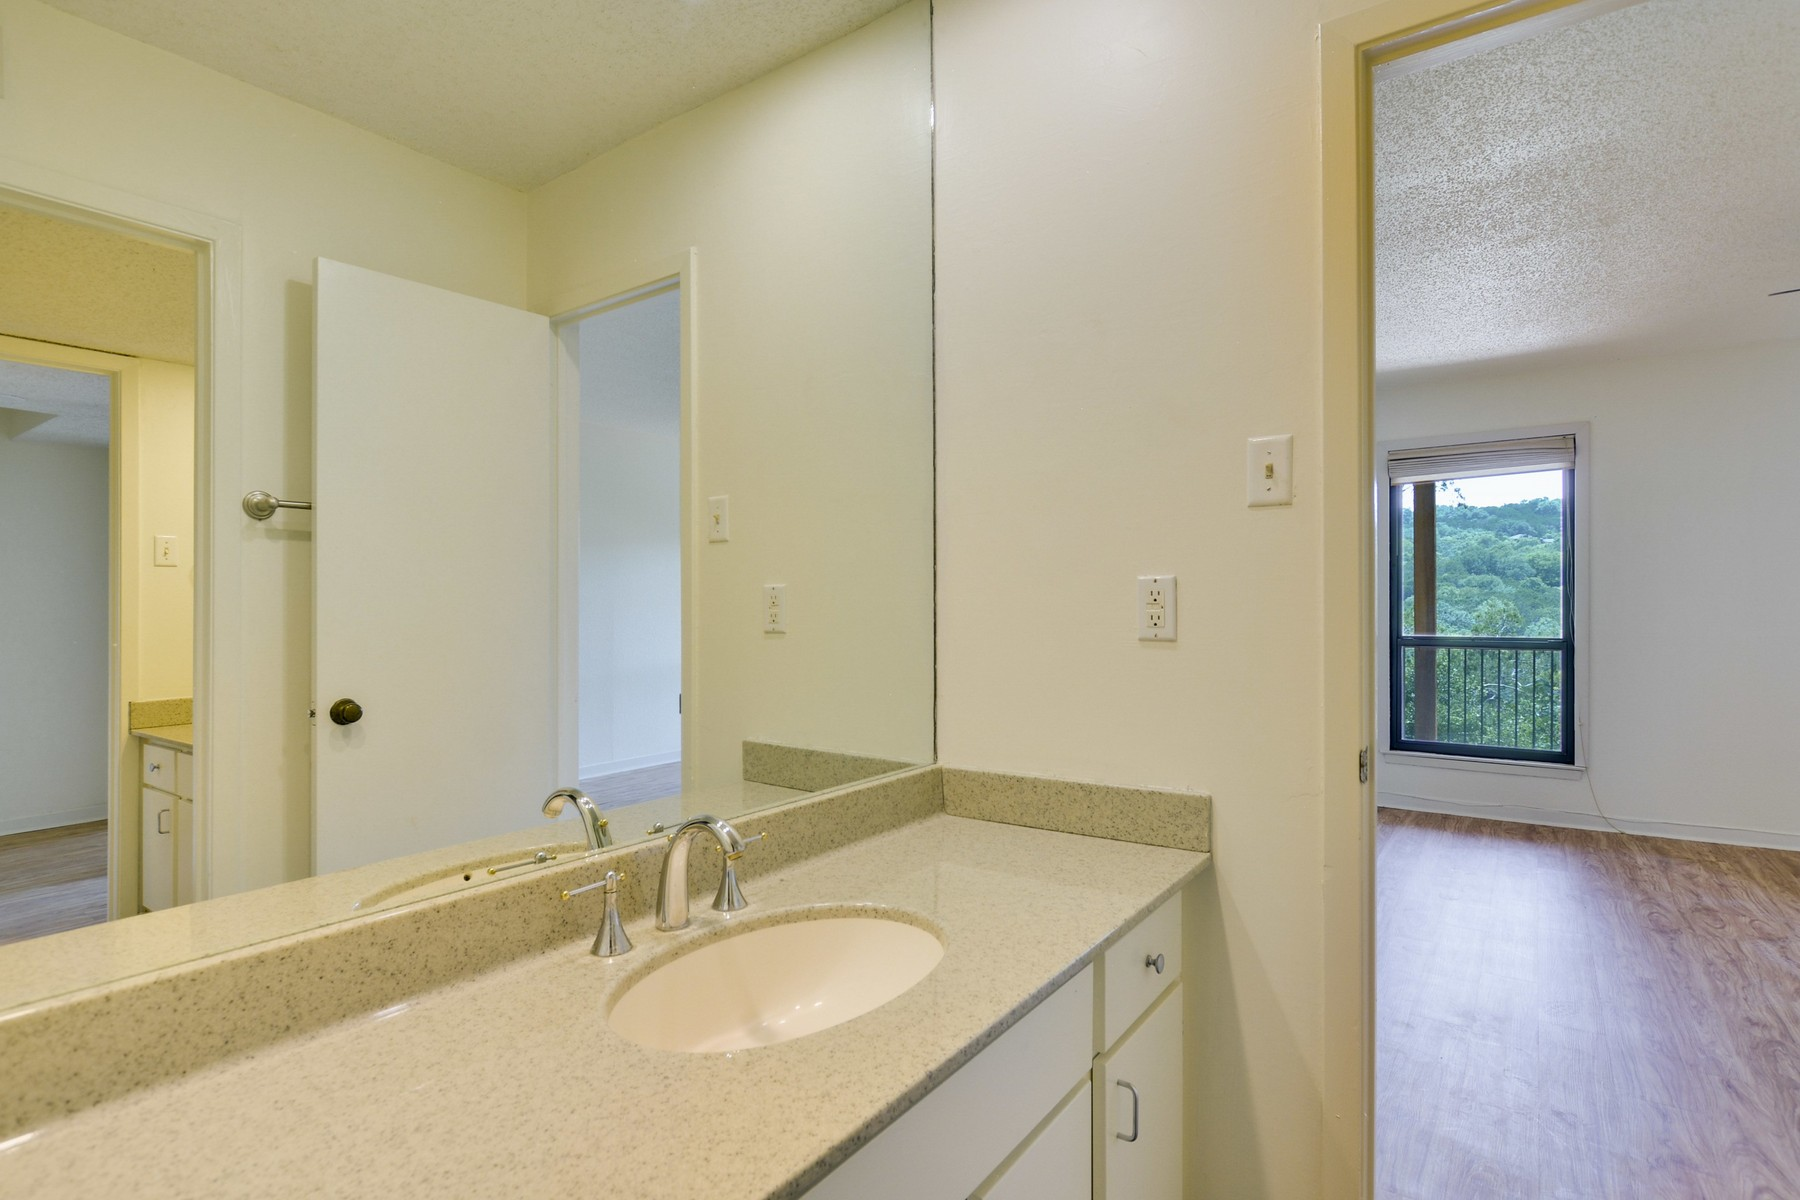 Additional photo for property listing at Beautiful Condo in the Heart of Westlake 1821 Westlake Dr 107 Austin, Texas 78746 Estados Unidos